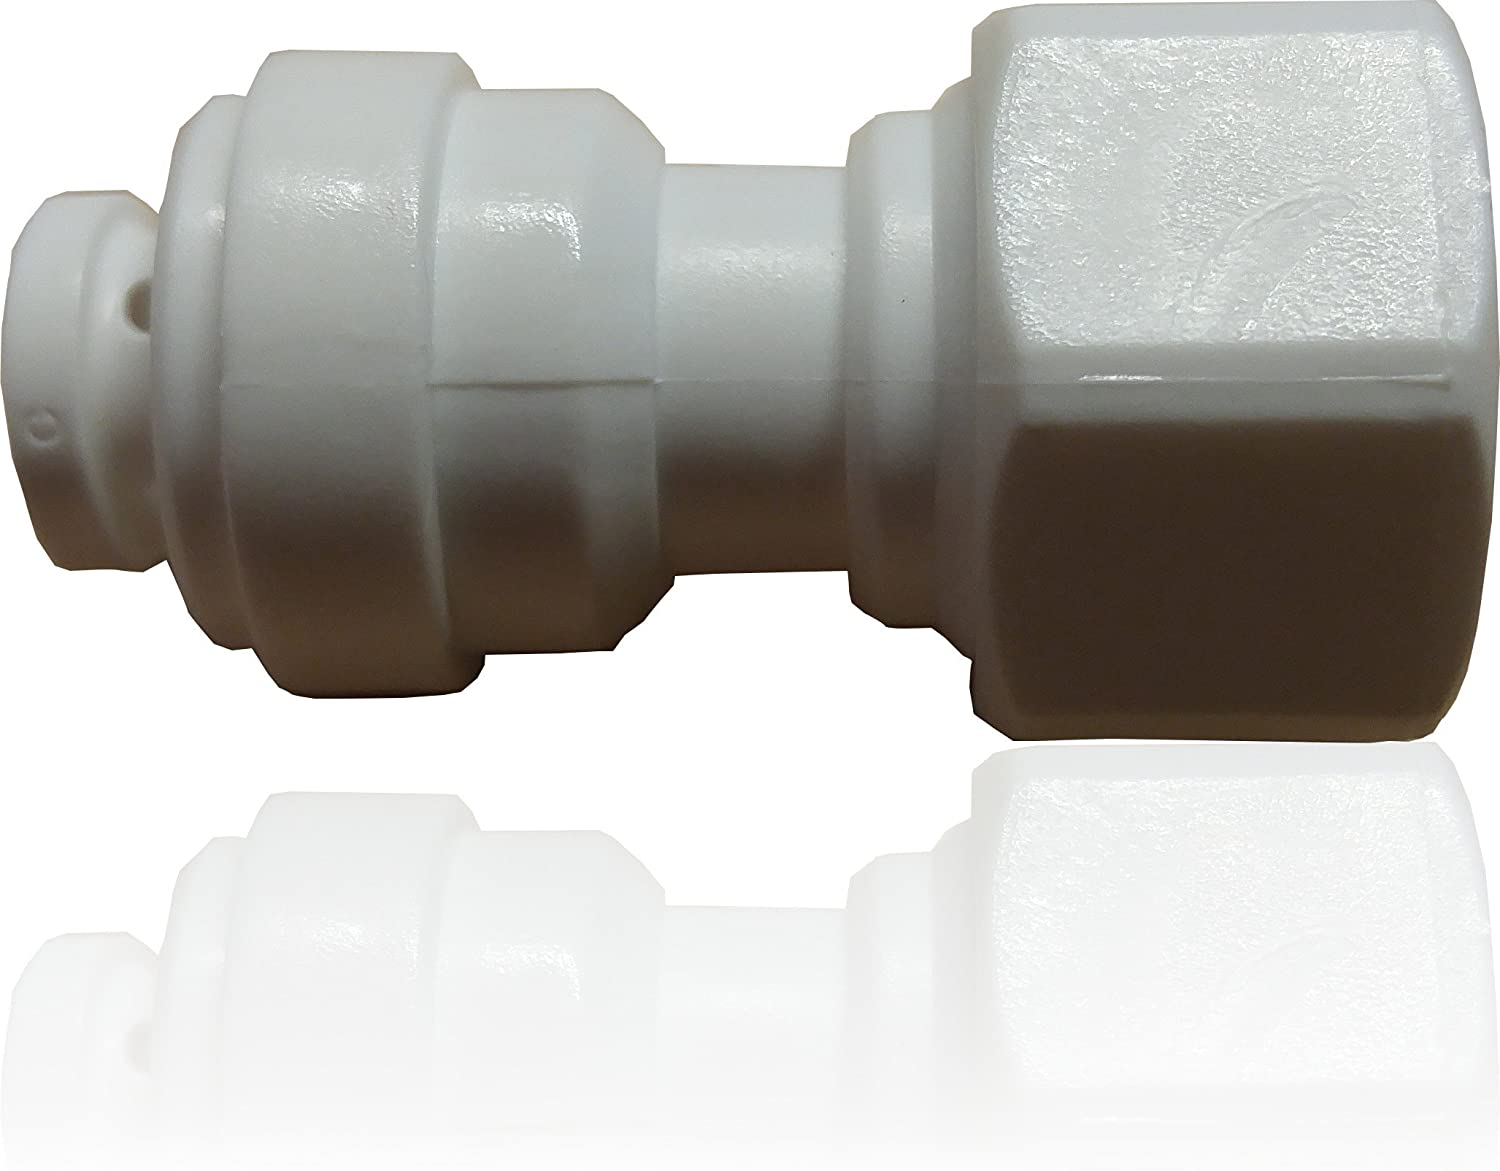 "Universal Reverse Osmosis Faucet Spout 1/4"" Quick Connect Adapter. NSF certified."